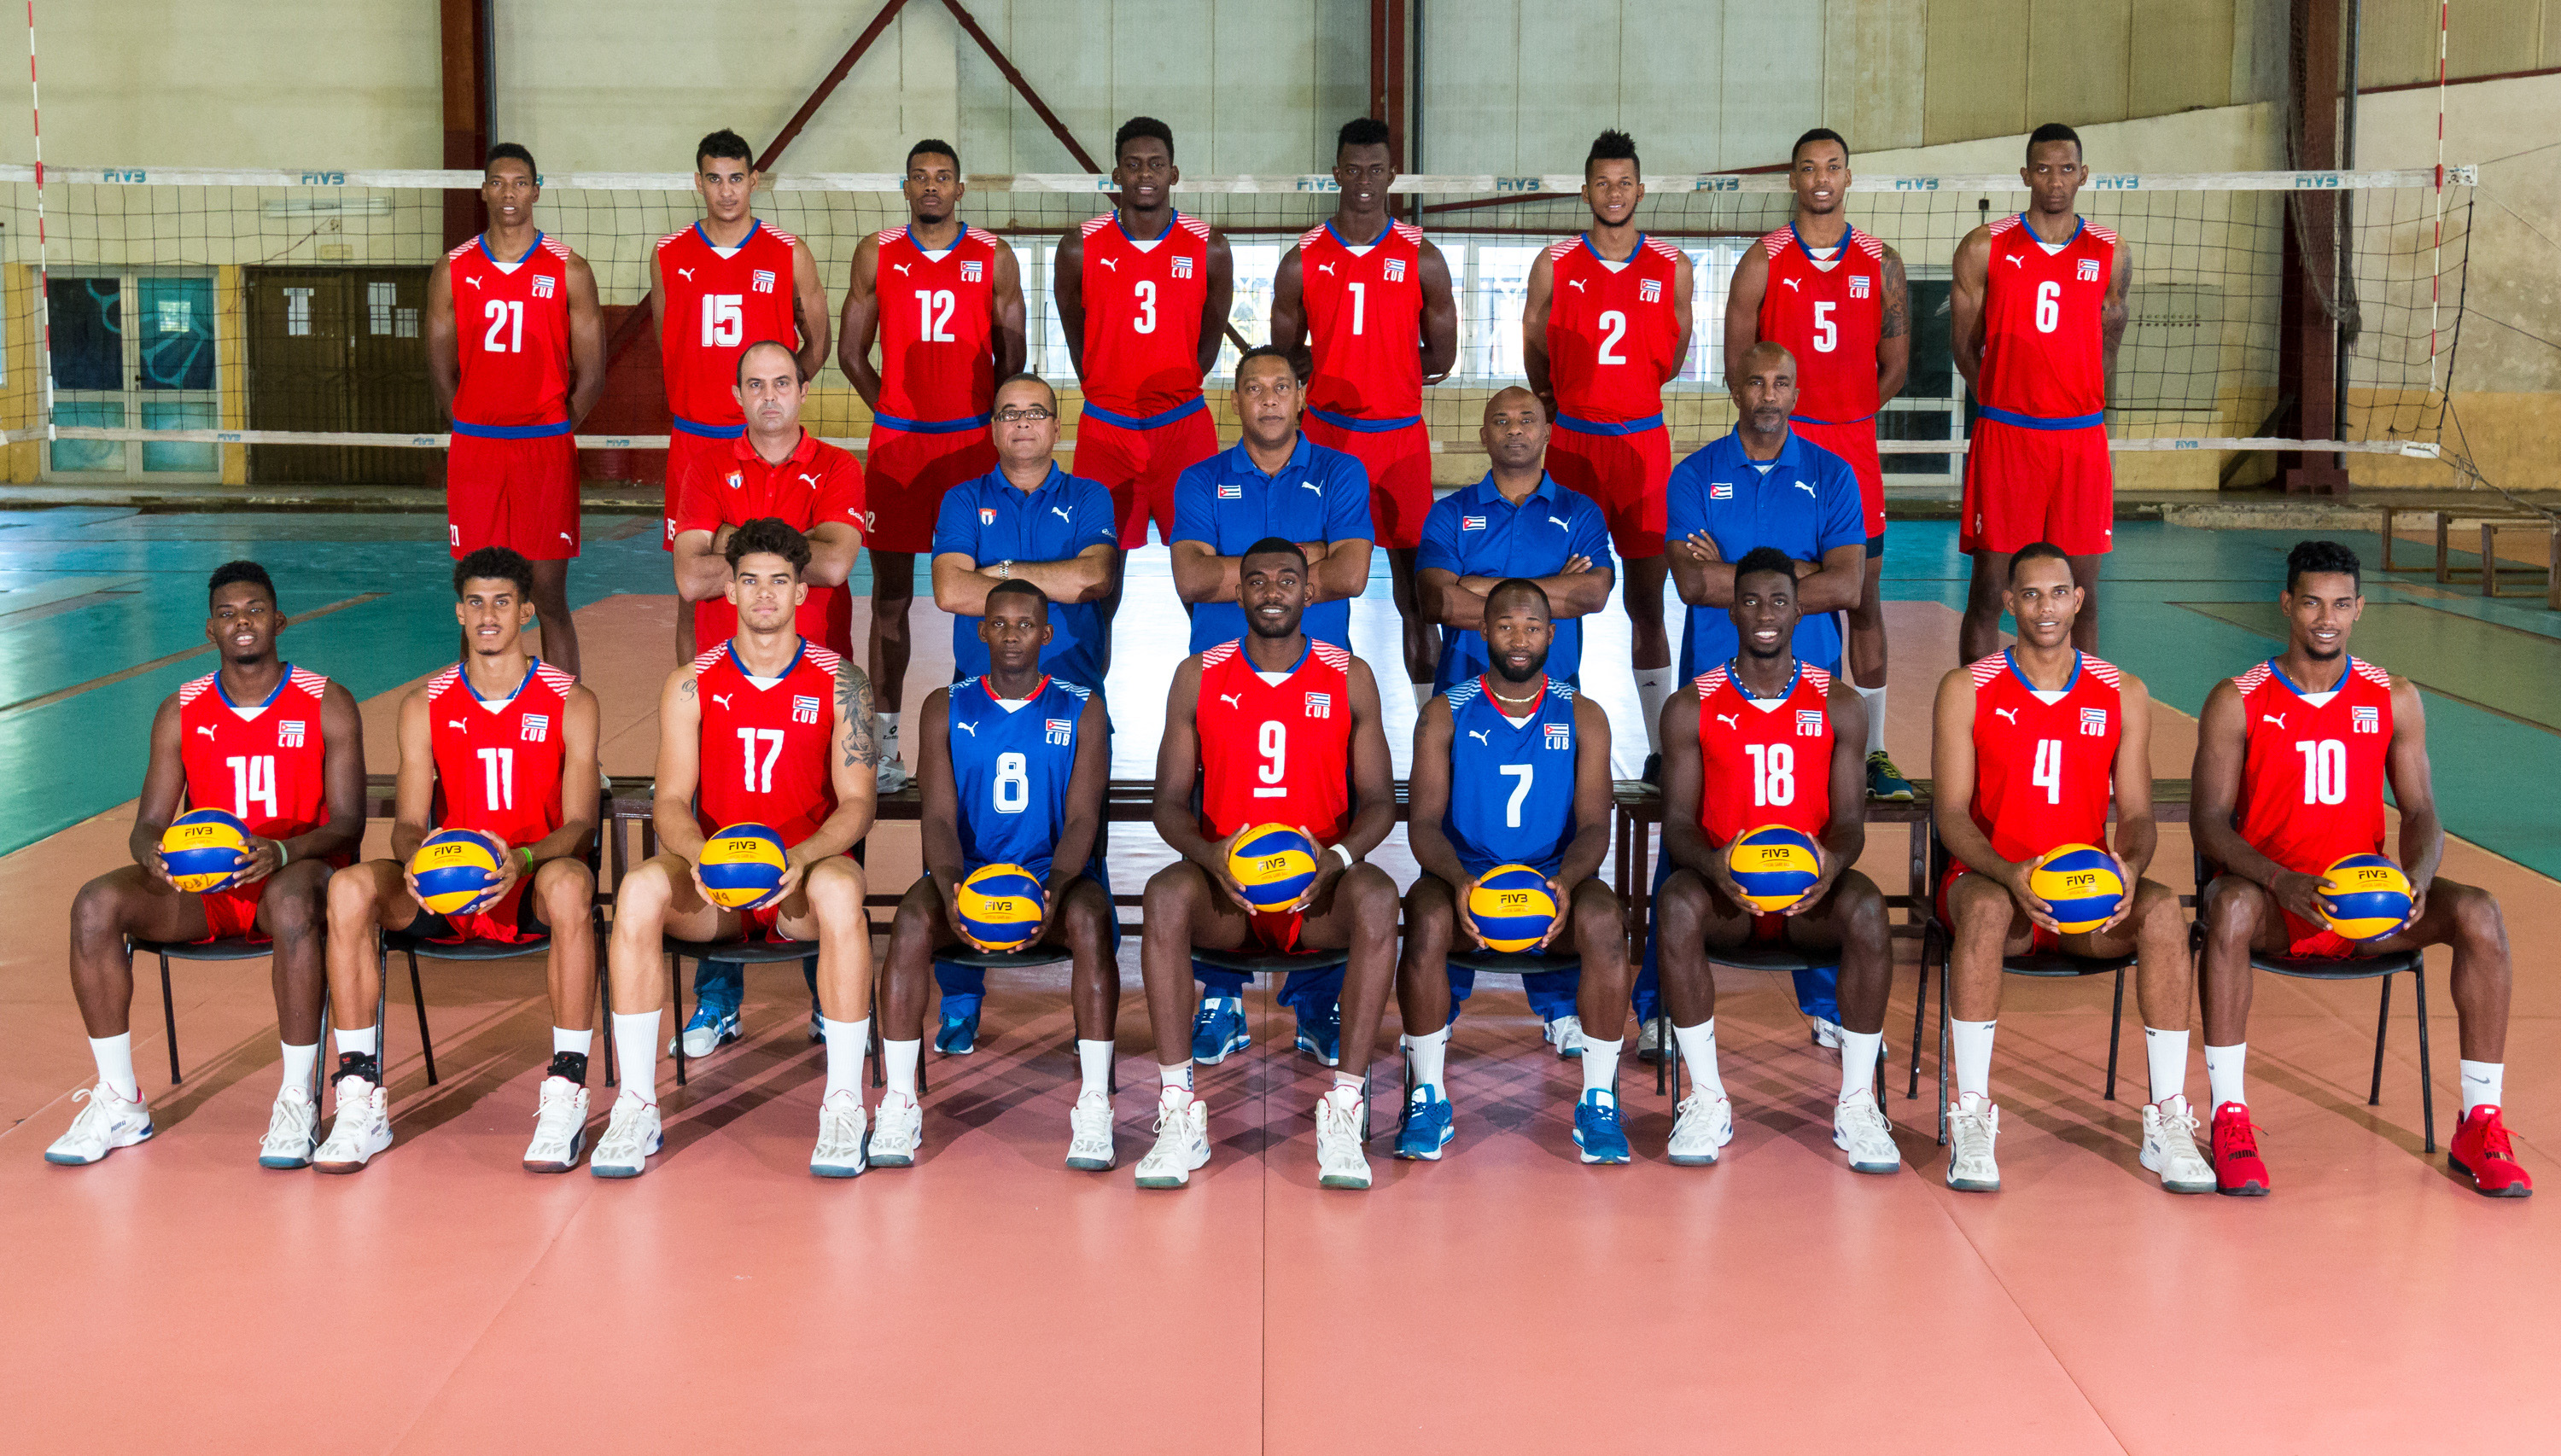 Overview Cuba Fivb Volleyball Men S World Championship Italy And Bulgaria 2018